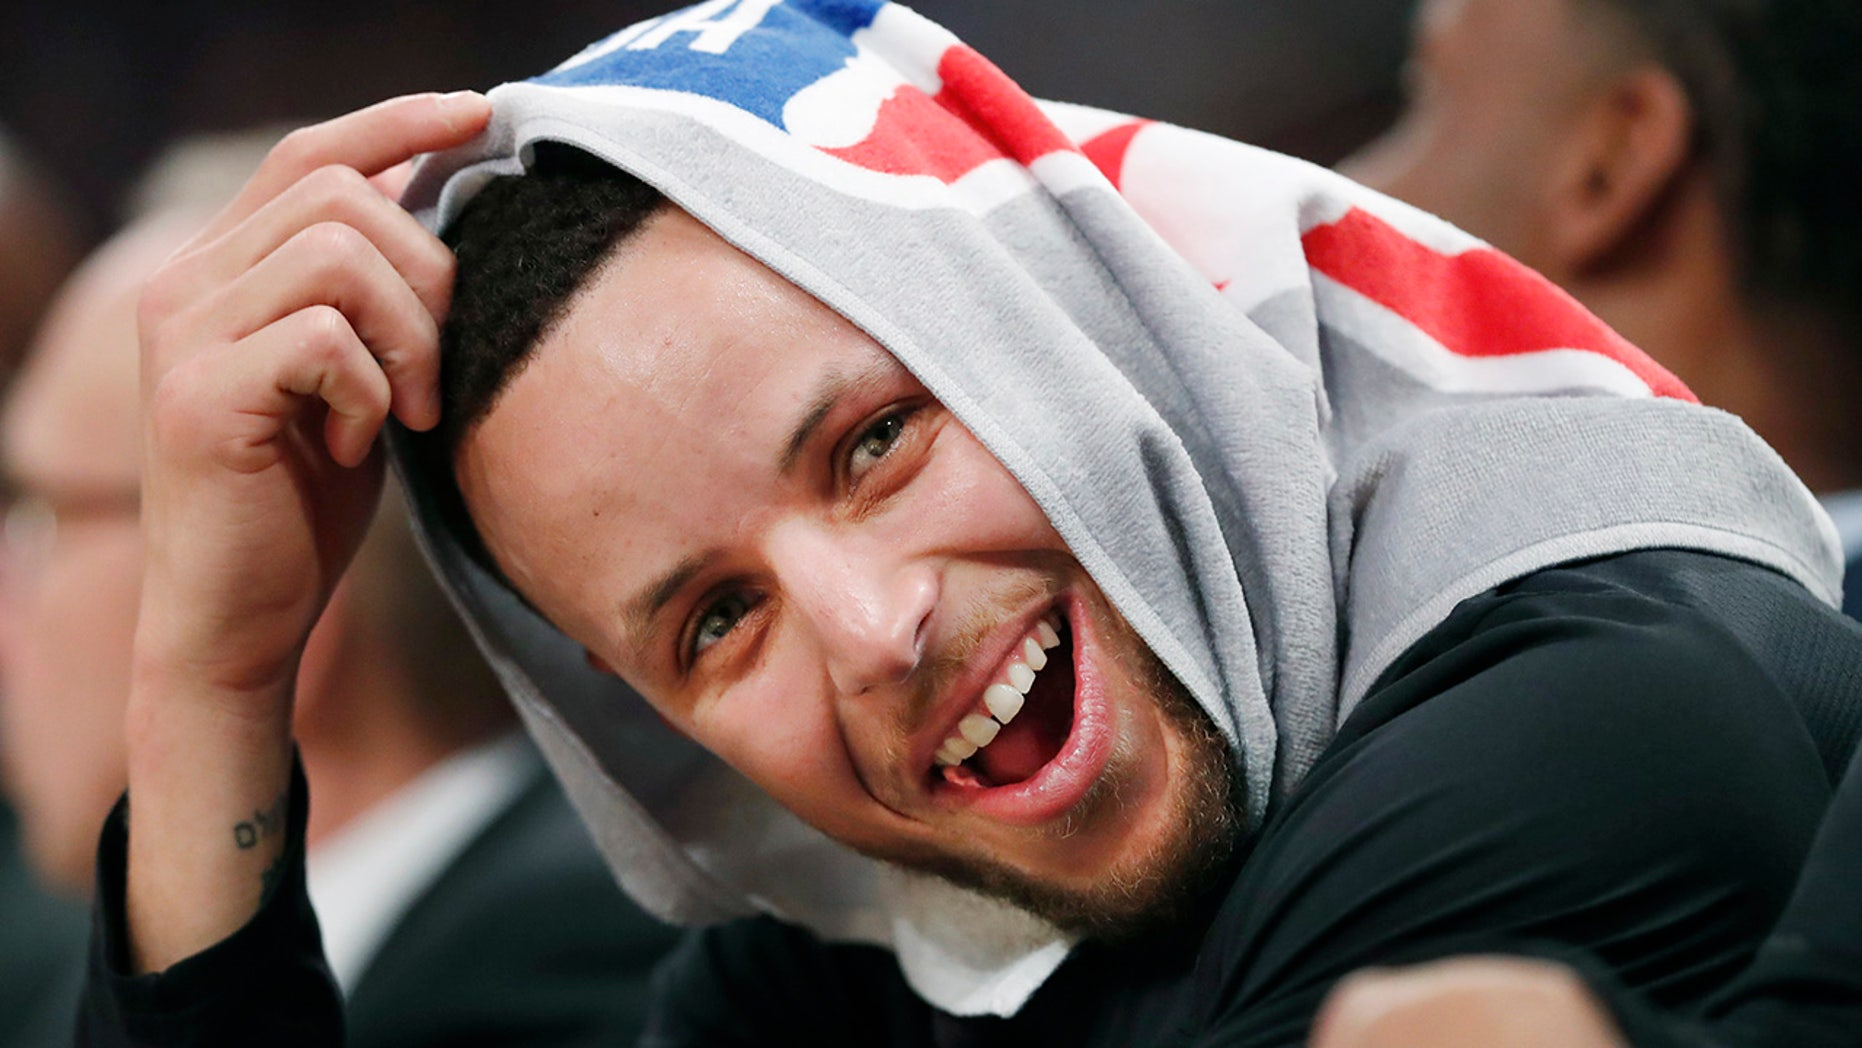 Golden State Warriors guard Stephen Curry, his head covered by a towel, laughs with teammates during the second half of an NBA basketball game against the New York Knicks, Monday, Feb. 26, 2018, in New York.